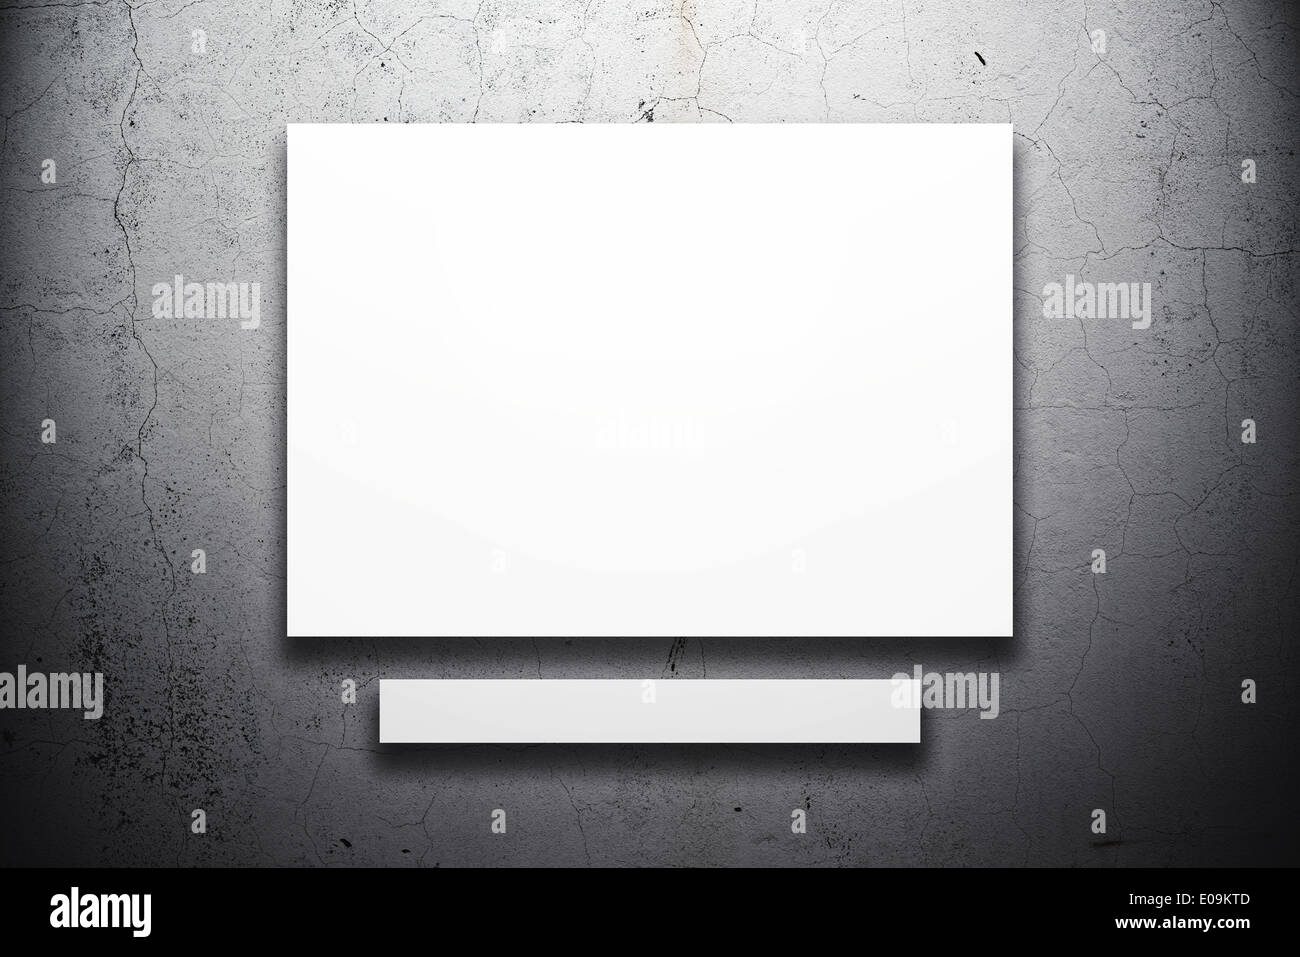 Poster hanging on the art gallery wall. Paper size matches the international A1 format with horizontal orientation. - Stock Image